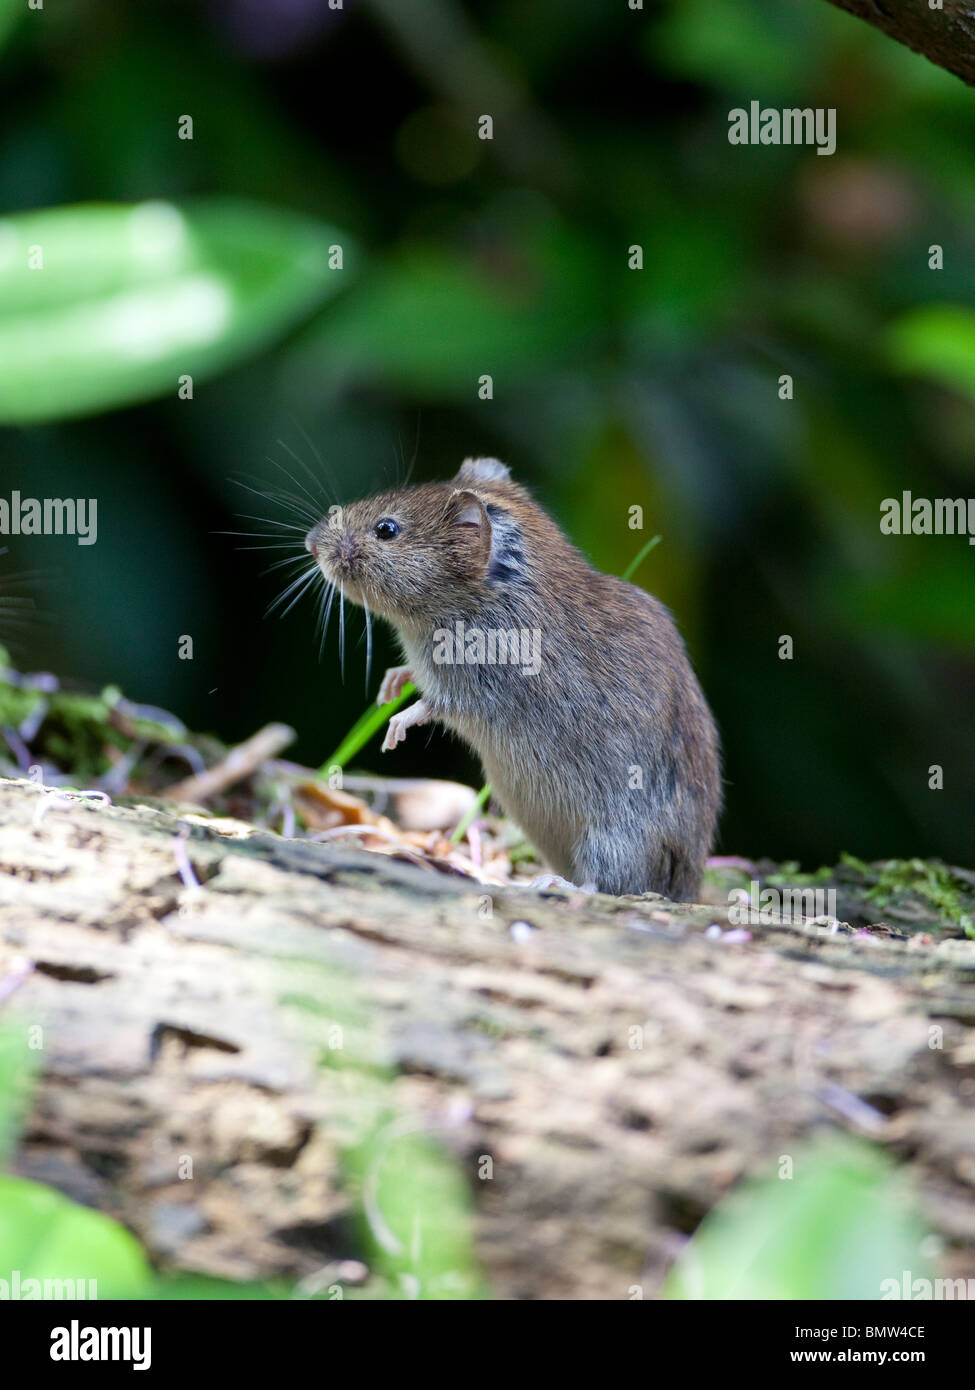 A small bank vole (Myodes glareolus ) ventures out into the sun to feed on a rotting log and collect a store of - Stock Image